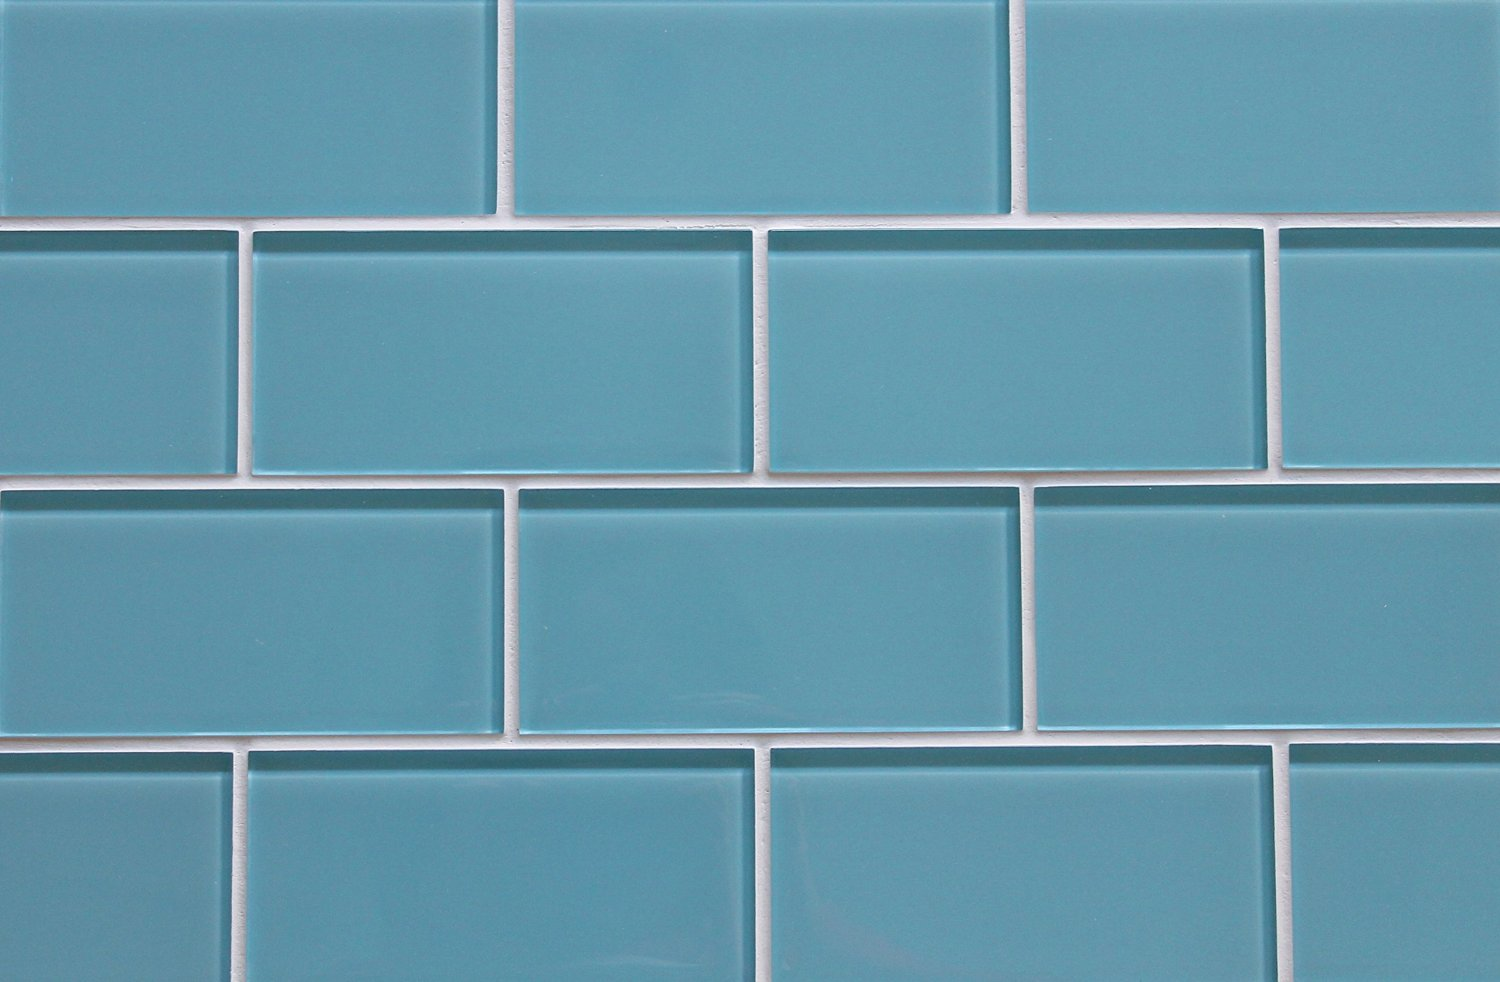 Tiled Kitchen Backsplash Subway Tile The Tile Home Guide